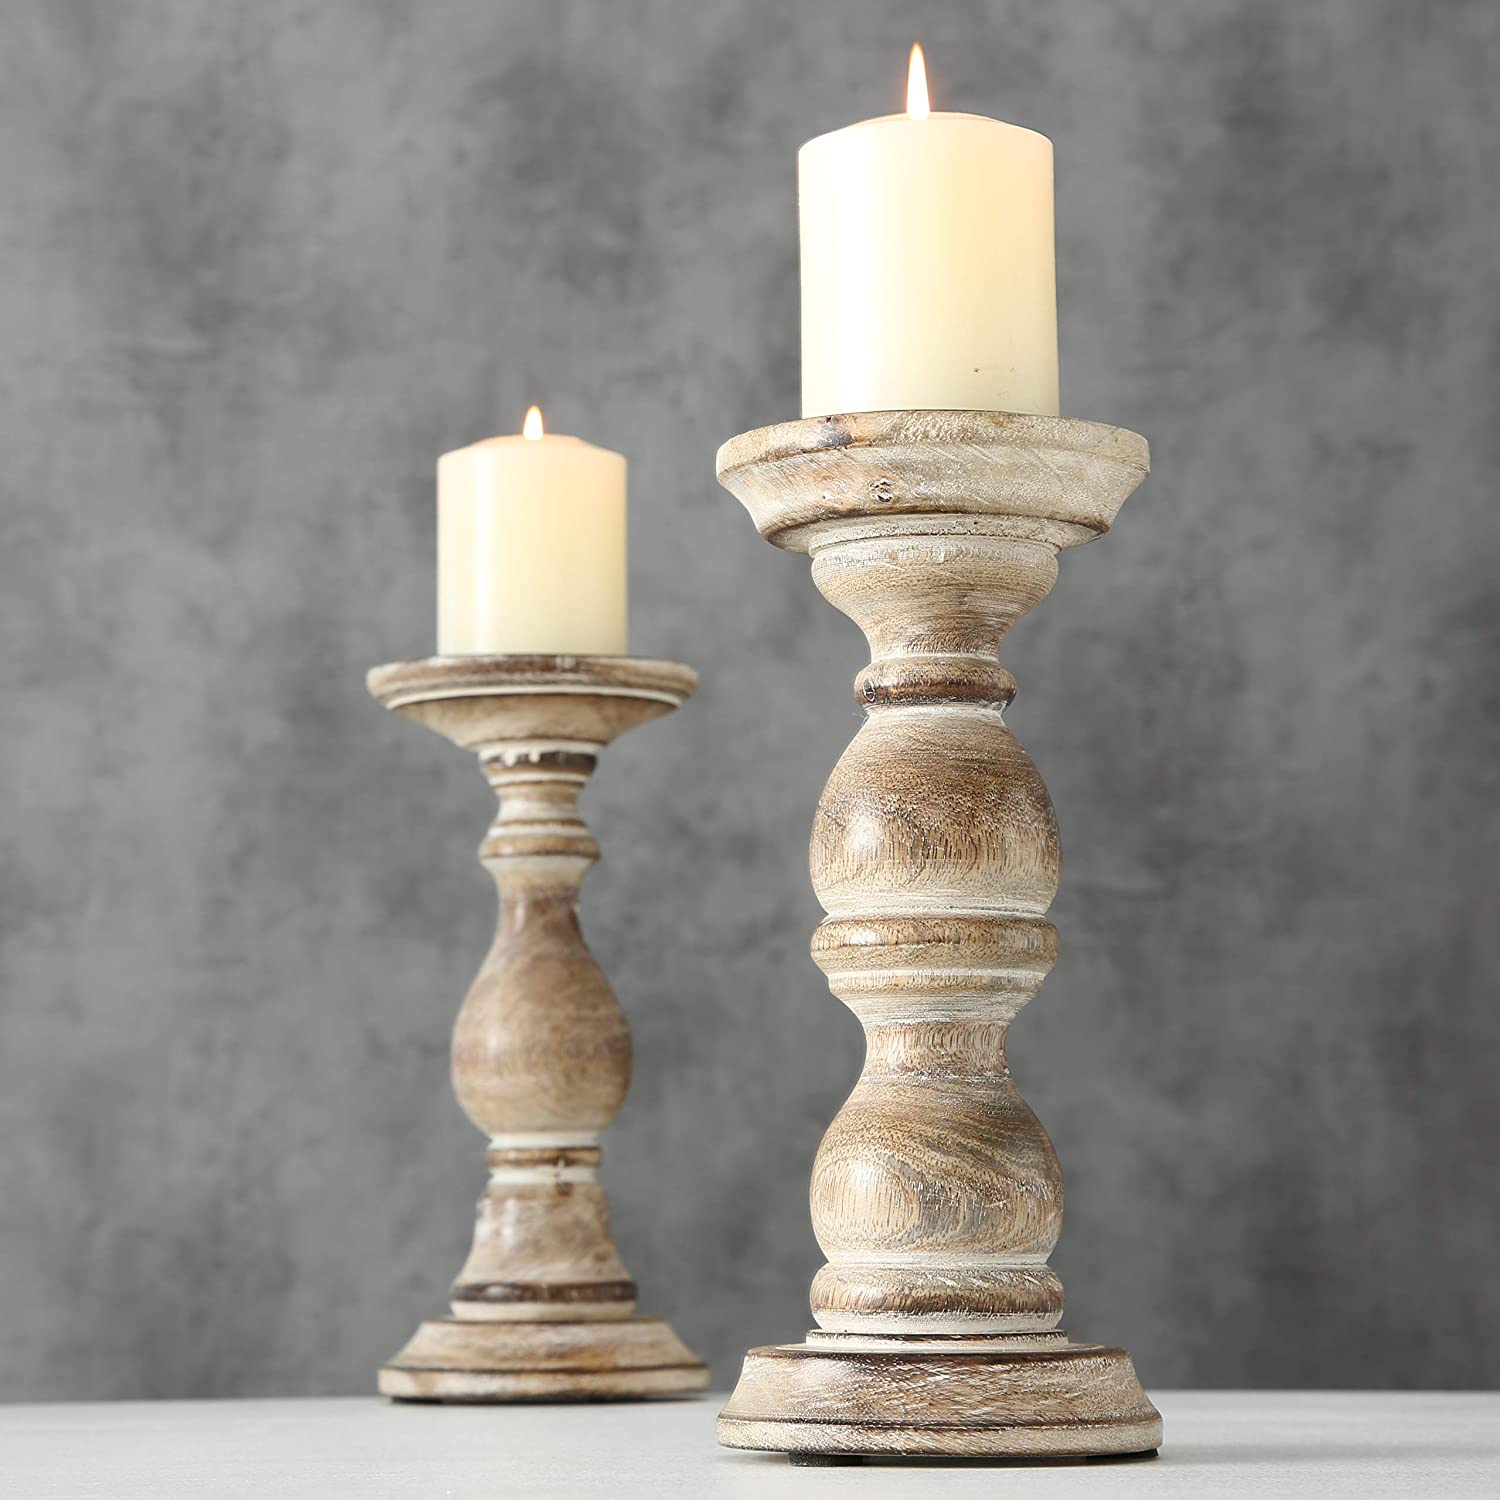 9 H x 4 D Inches Rounded Turned Columns Distressed with Vintage Style White Wash Spiked Metal Top Sustainable Mango Set of 2 WHW Whole House Worlds Rustic Stockbridge Wooden Candle Holders